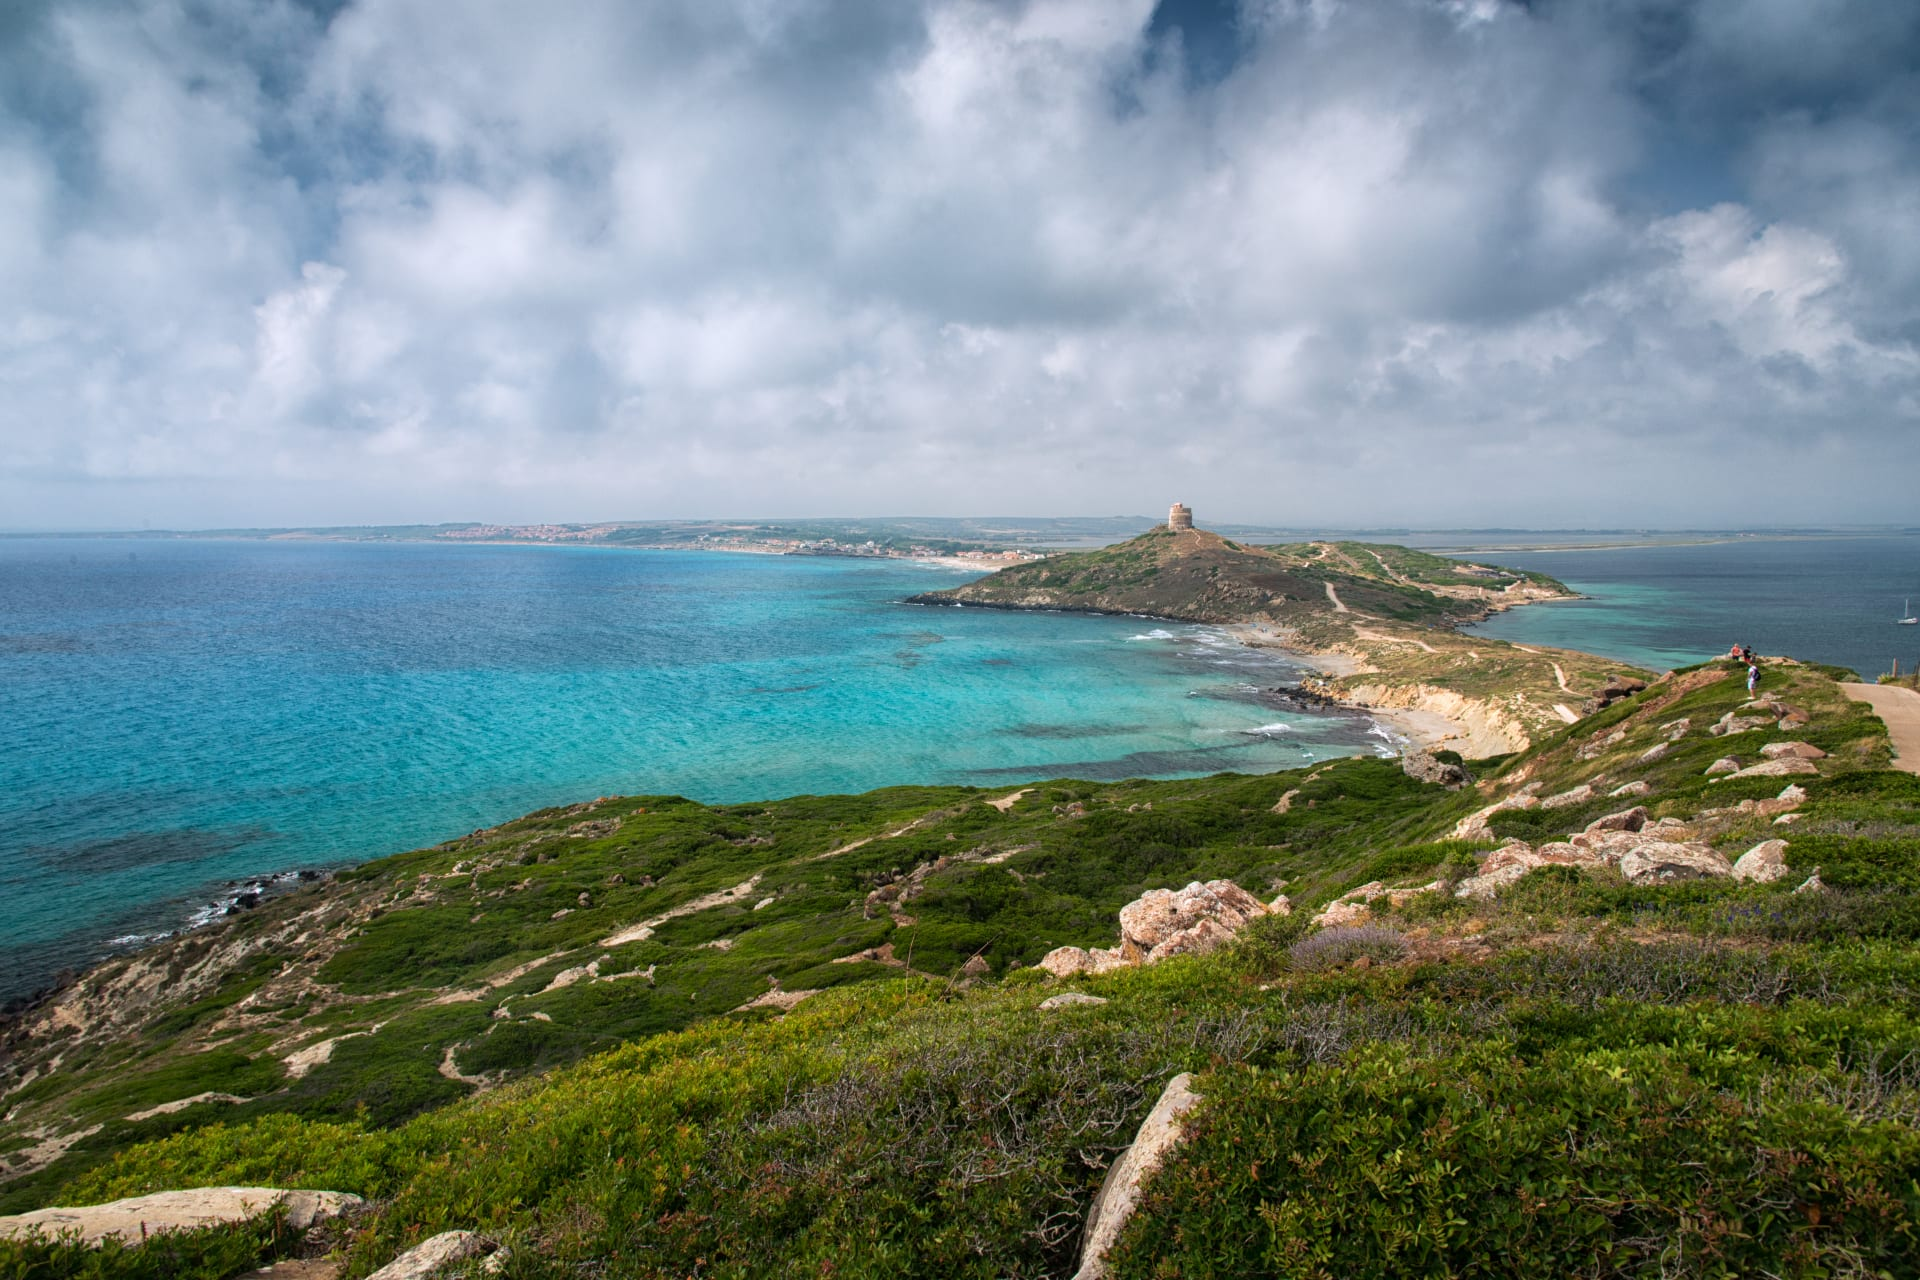 Sardinia - The Stunning Peninsula of Sinis and the Ruins of Tharros - Limited Edition